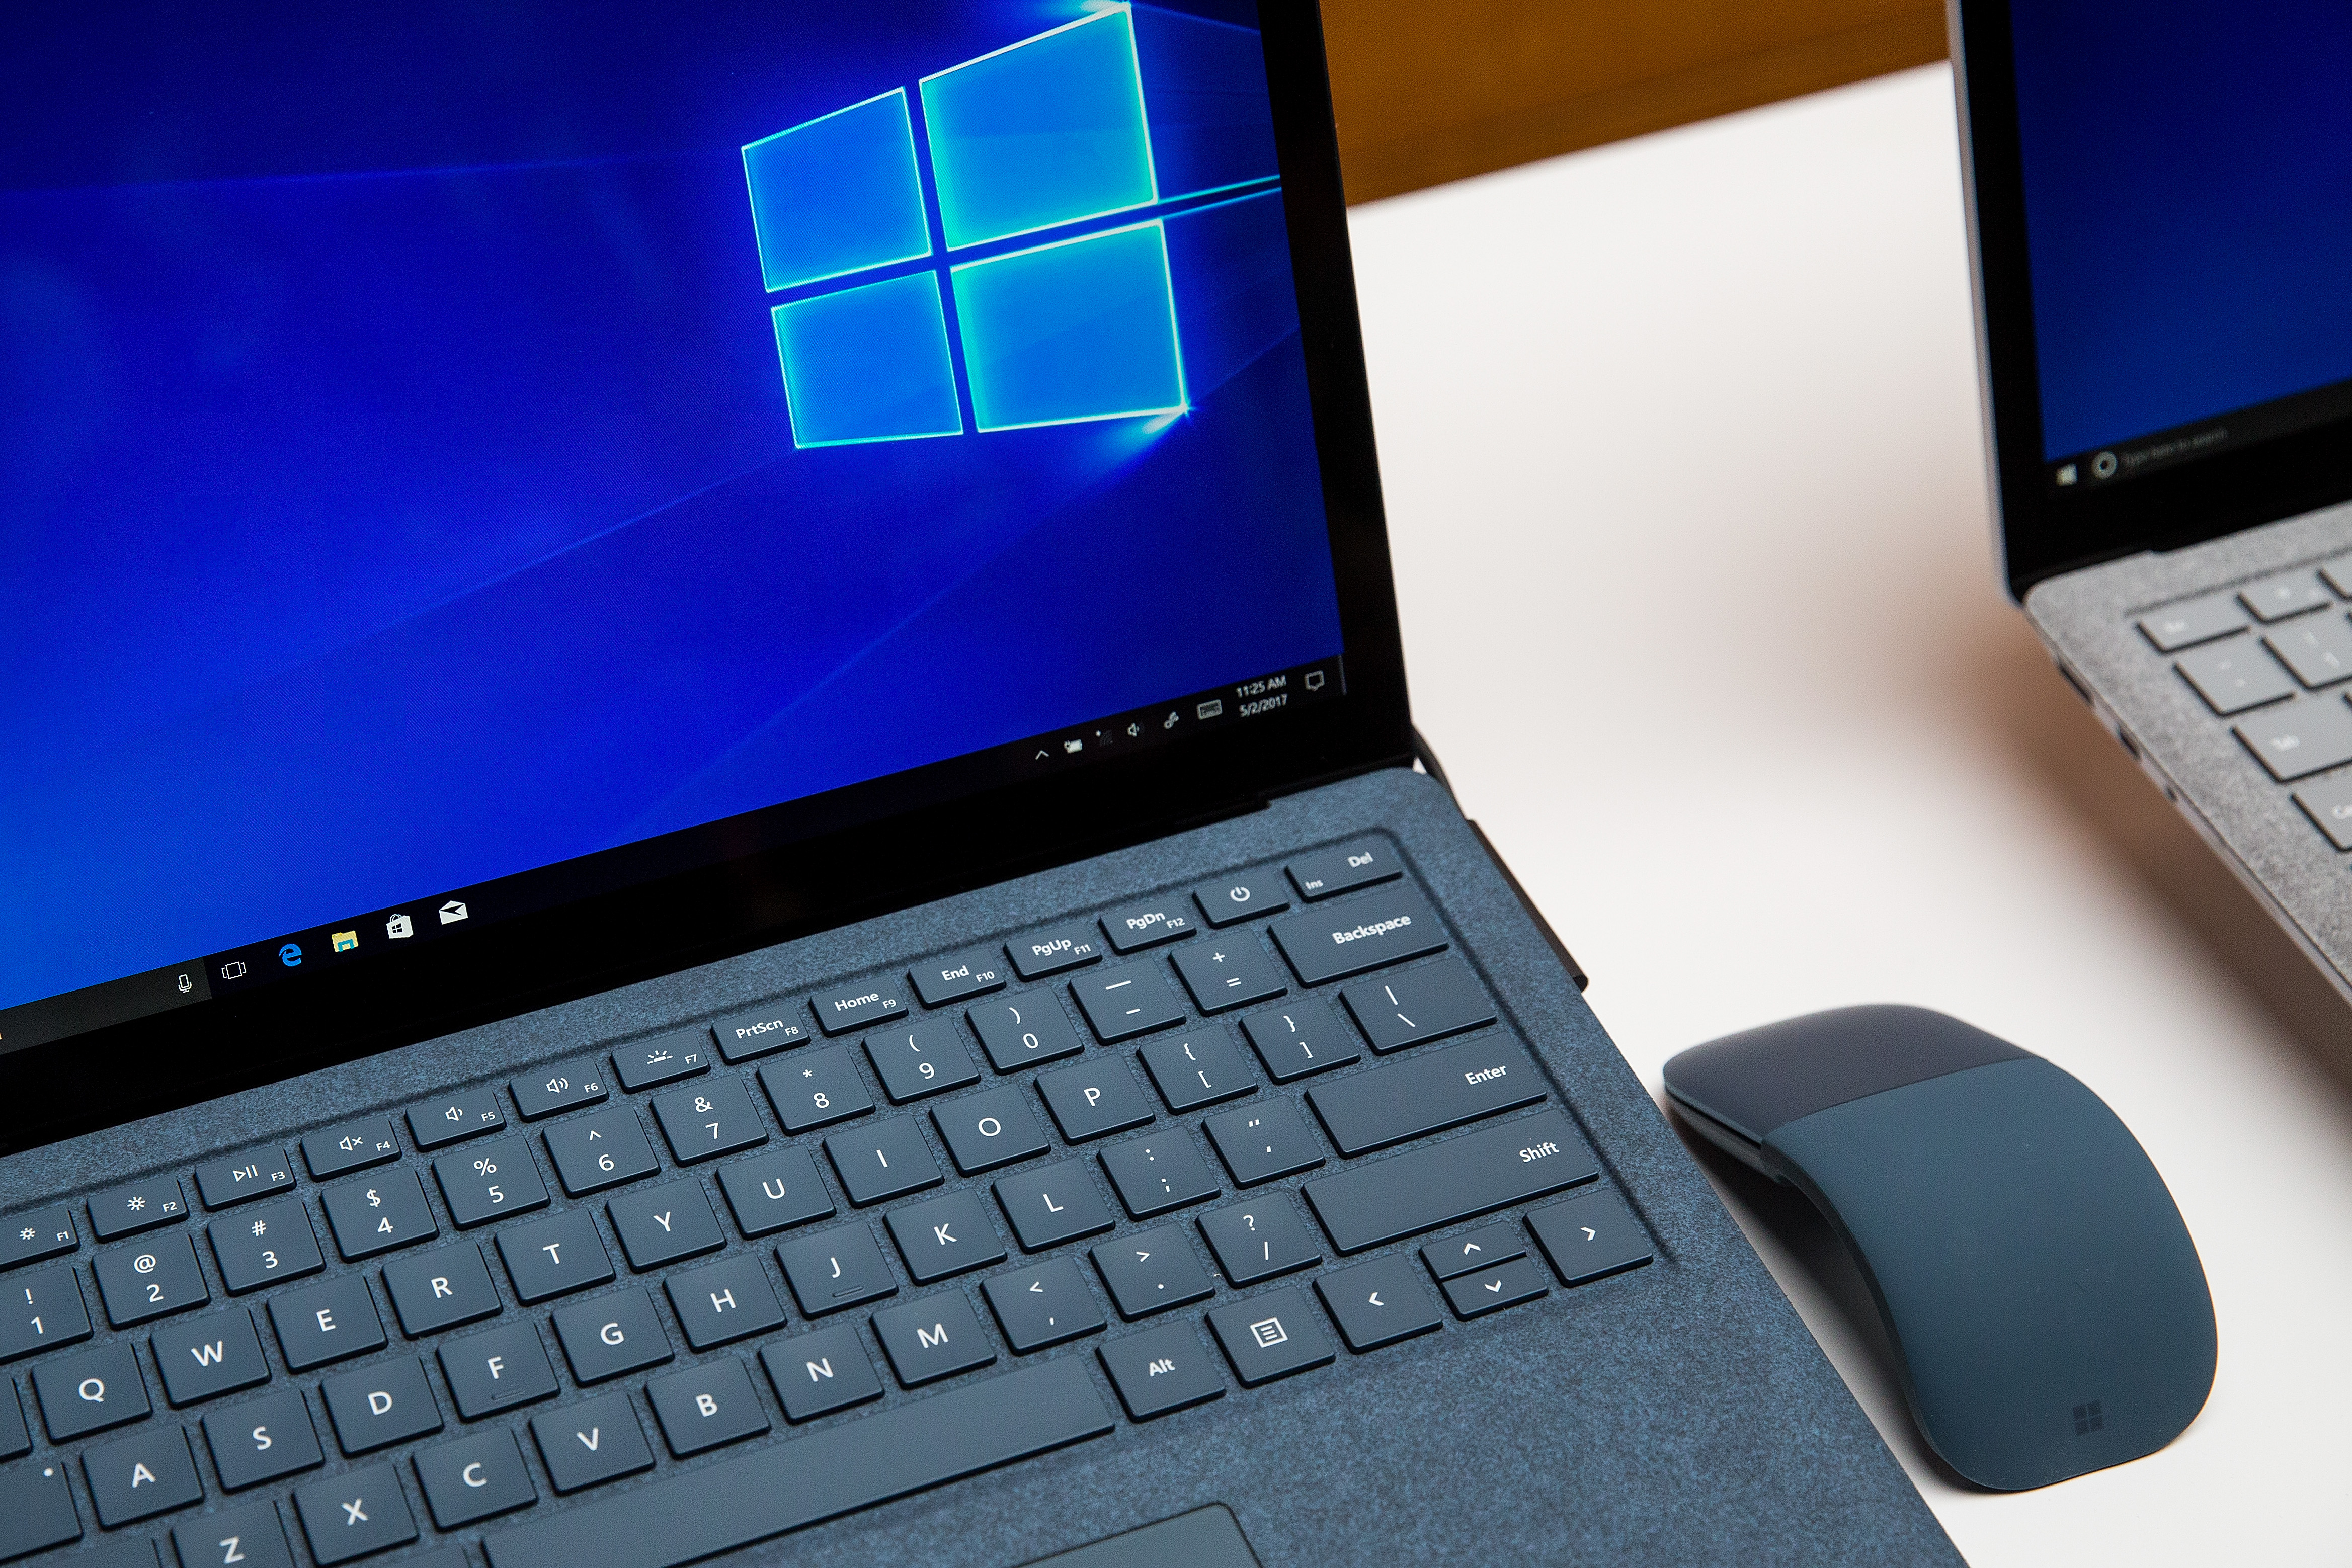 Windows 11 has leaked. It's a bunch of BS